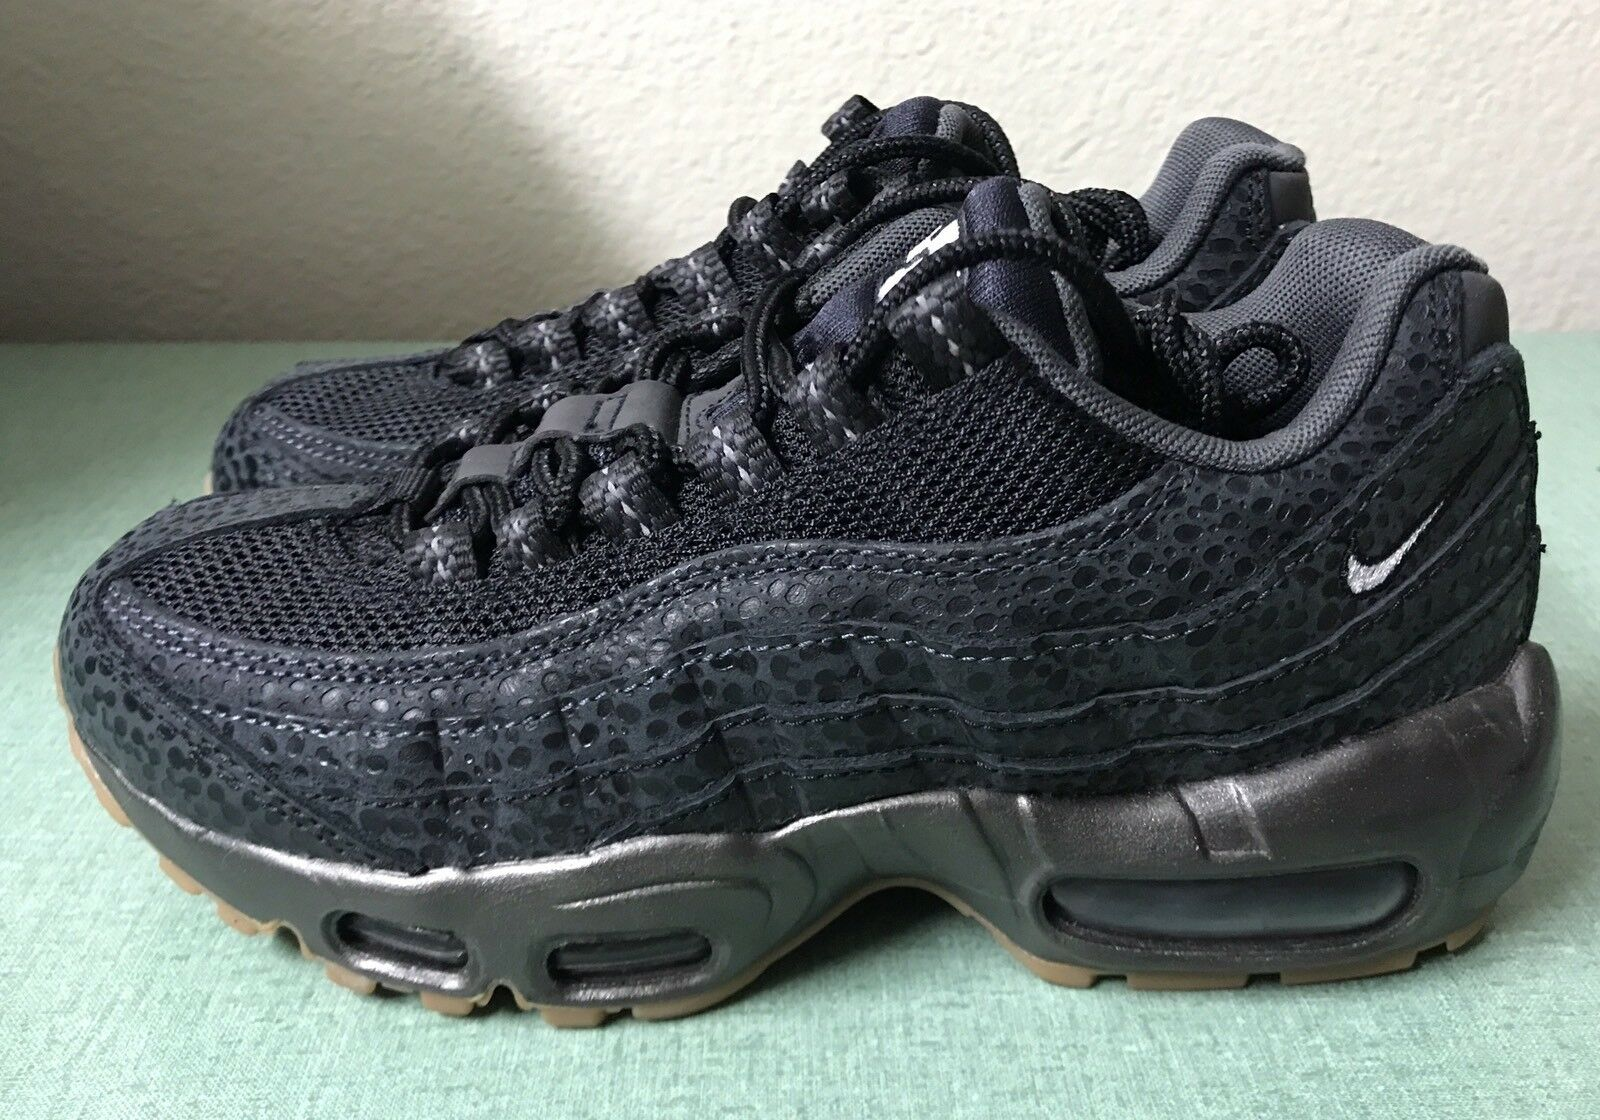 f1f955639 Nike Air Max 95 PRM Premium Black White White White Anthracite Women s Sz 6  Safari NEW!!! 9517cb